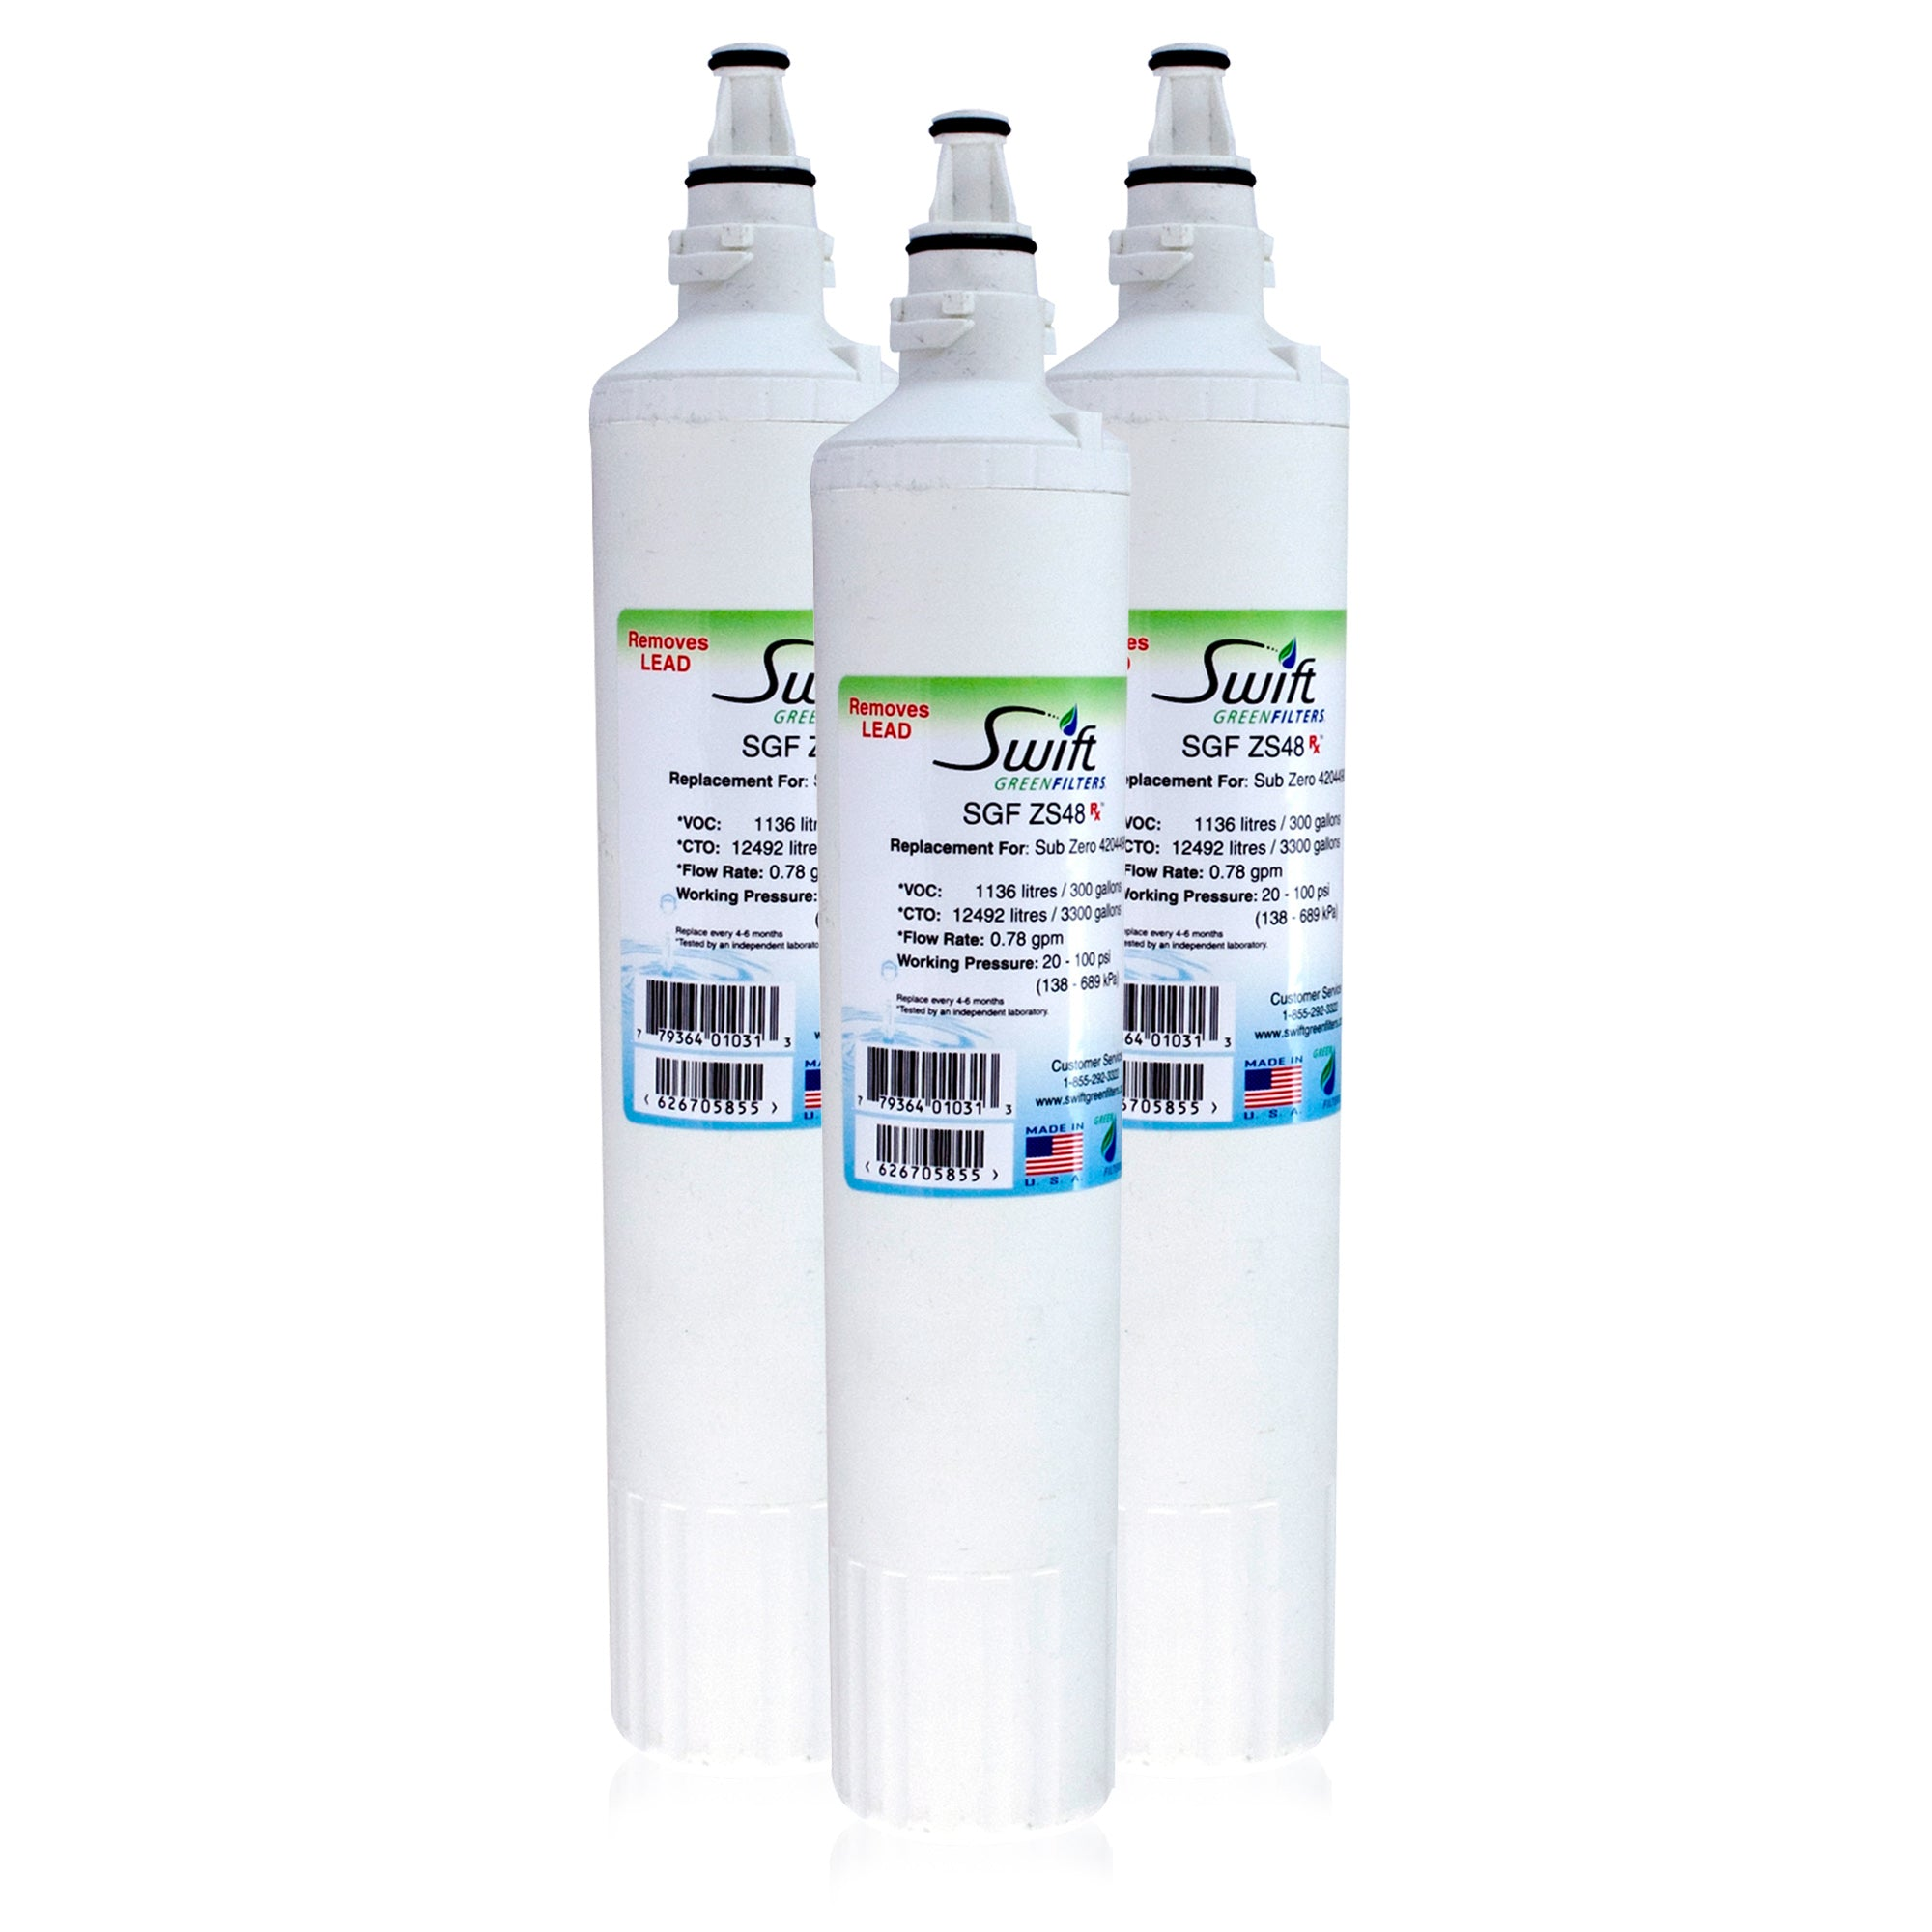 PRO 48 Compatible Pharmaceutical Refrigerator Water Filter